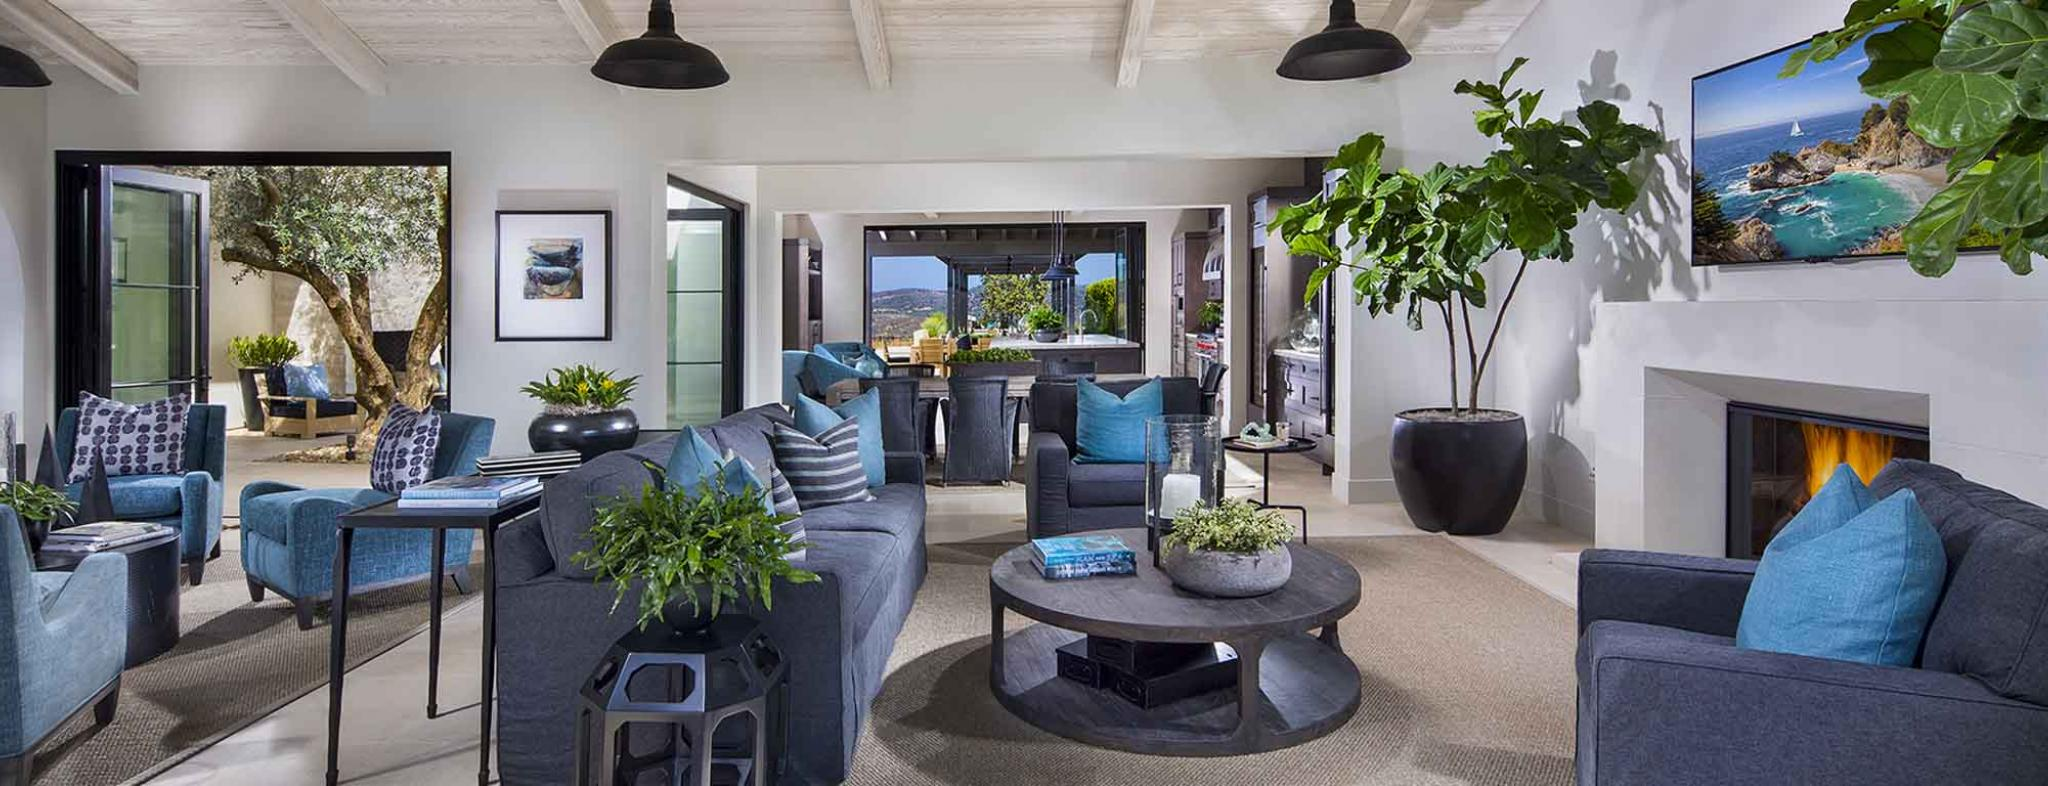 The New Home Company Announces First-of-its-Kind Design Collaboration with RH, Restoration Hardware for Luxury Residences at Crystal Cove